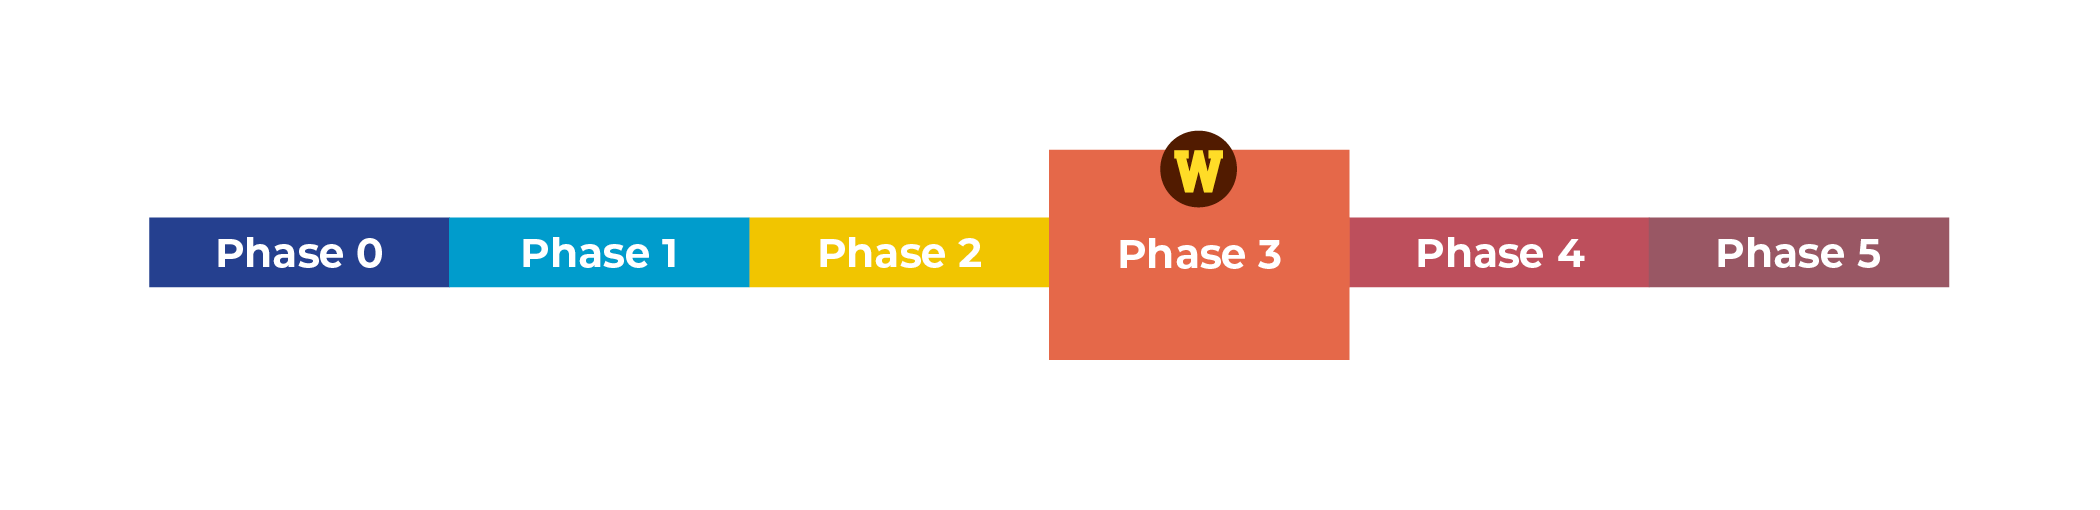 Western is at Phase 3.